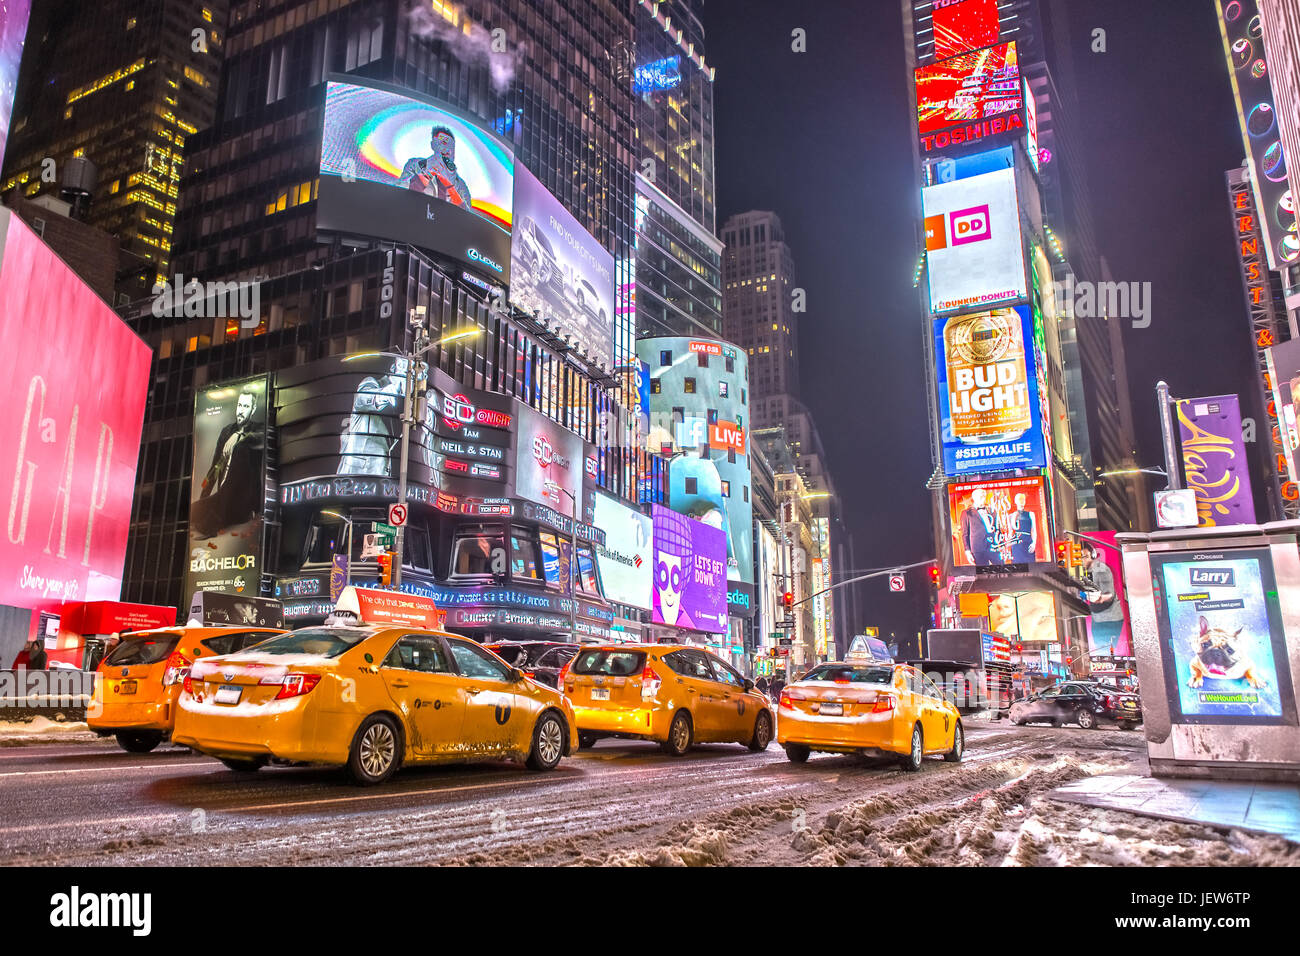 Les taxis jaunes au Times Square à New York Photo Stock